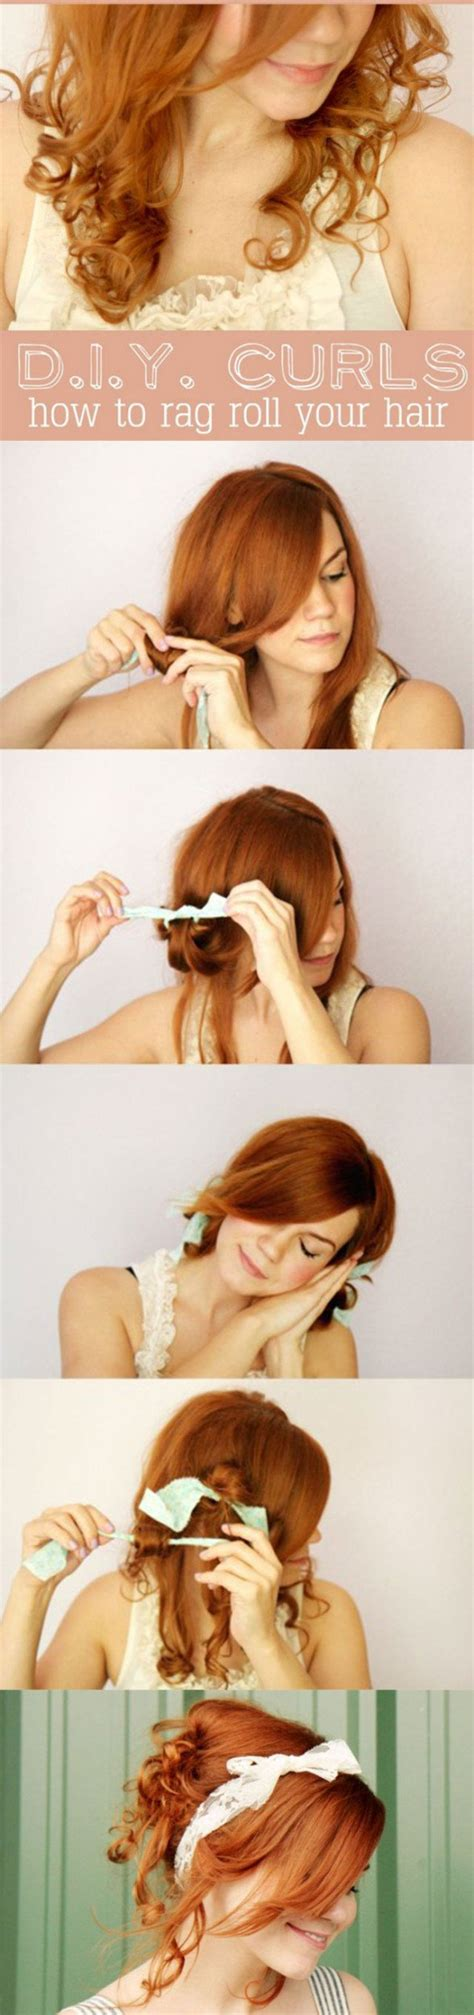 cute hairstyle steps 17 easy diy tutorials for glamorous and cute hairstyle